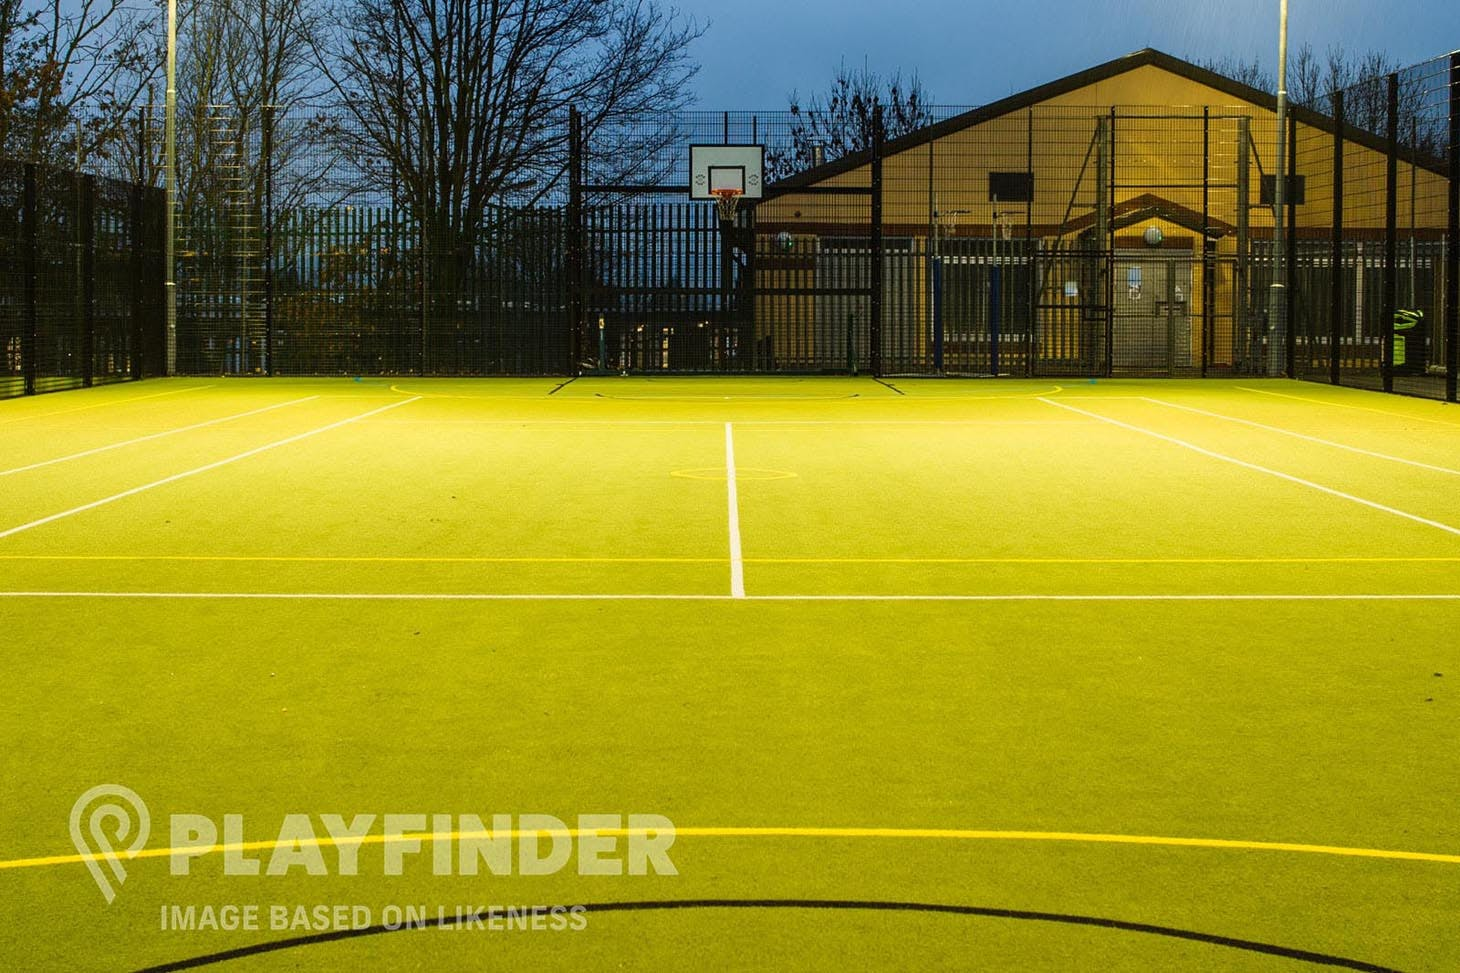 dlr Meadowbrook Outdoor | Astroturf basketball court